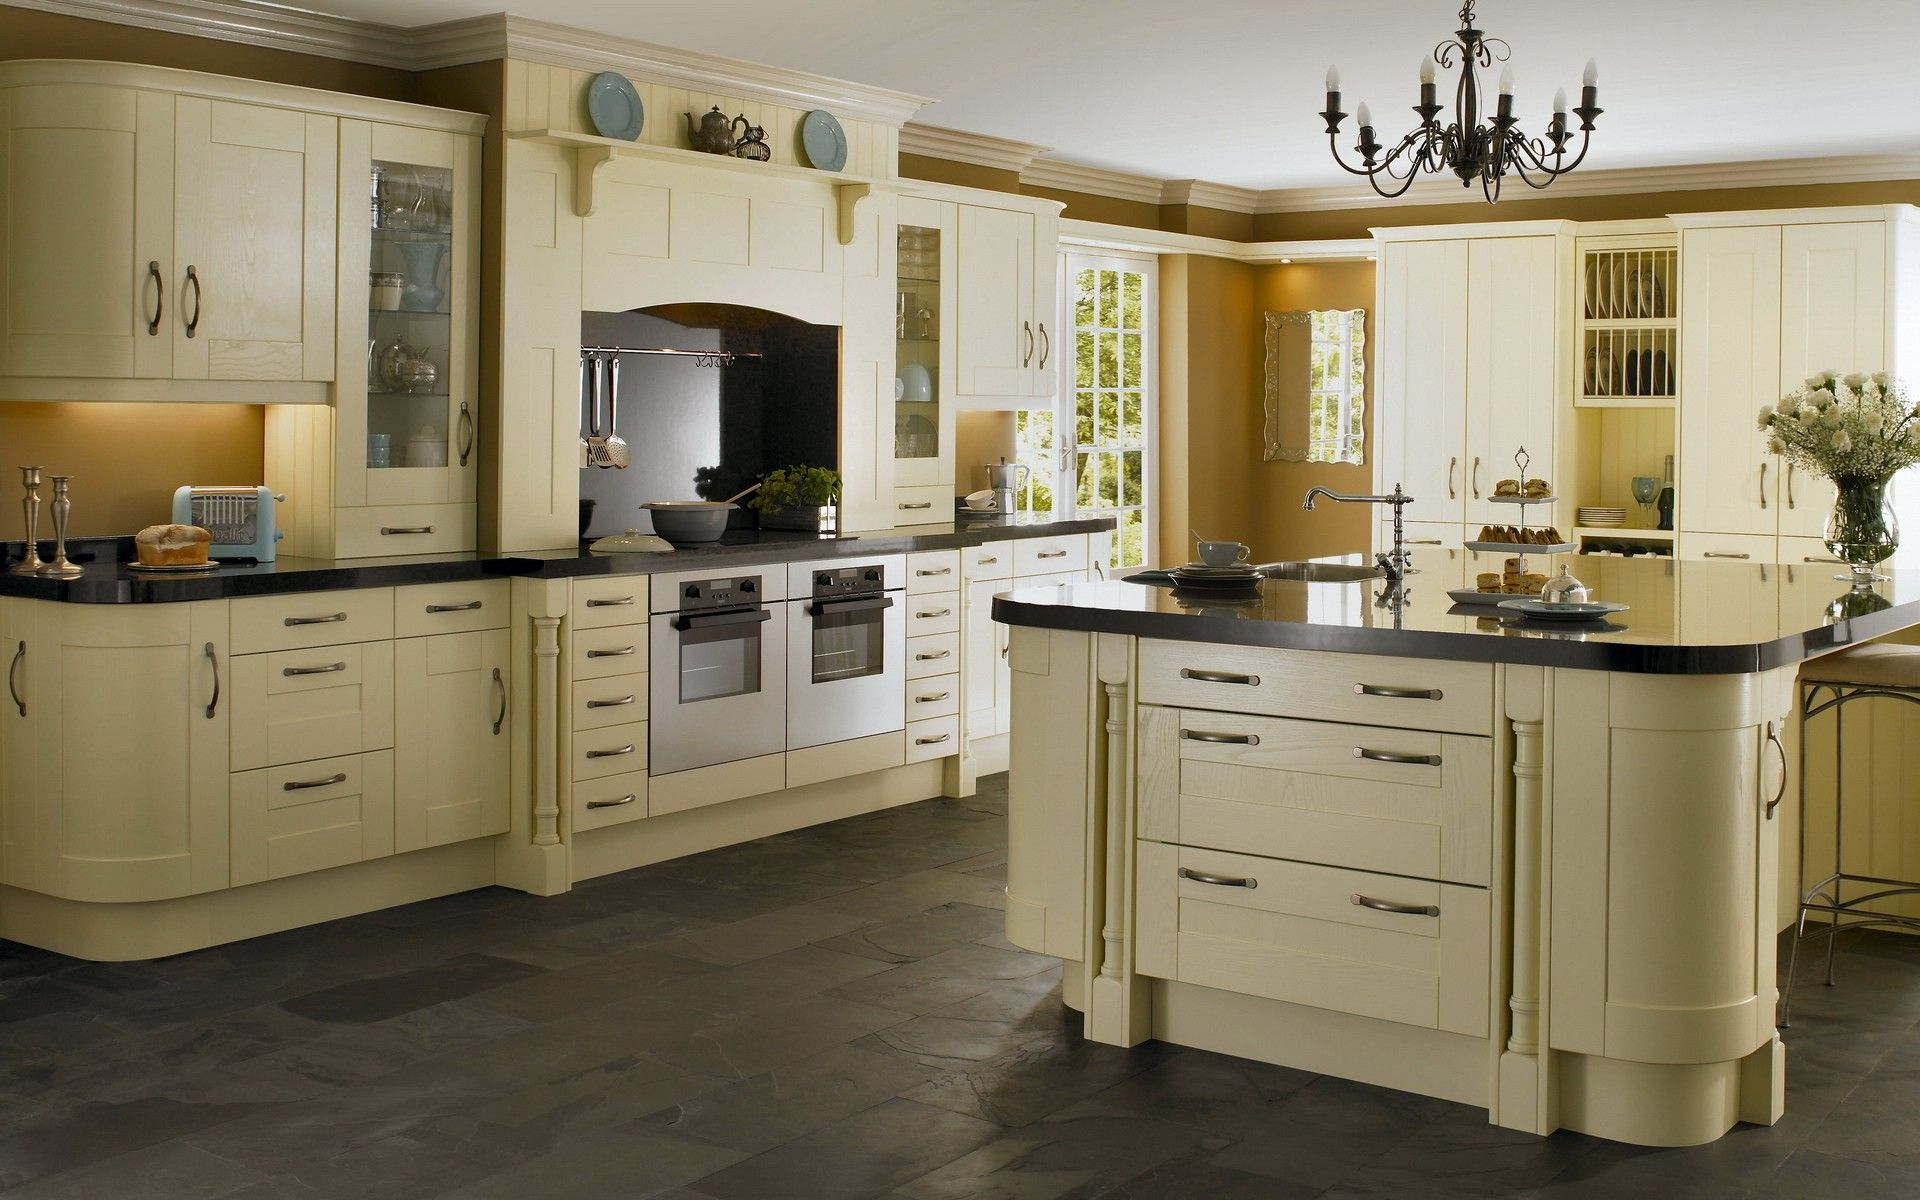 Best Cream Cabinets Grey Floor Images Google Search Luxury 640 x 480